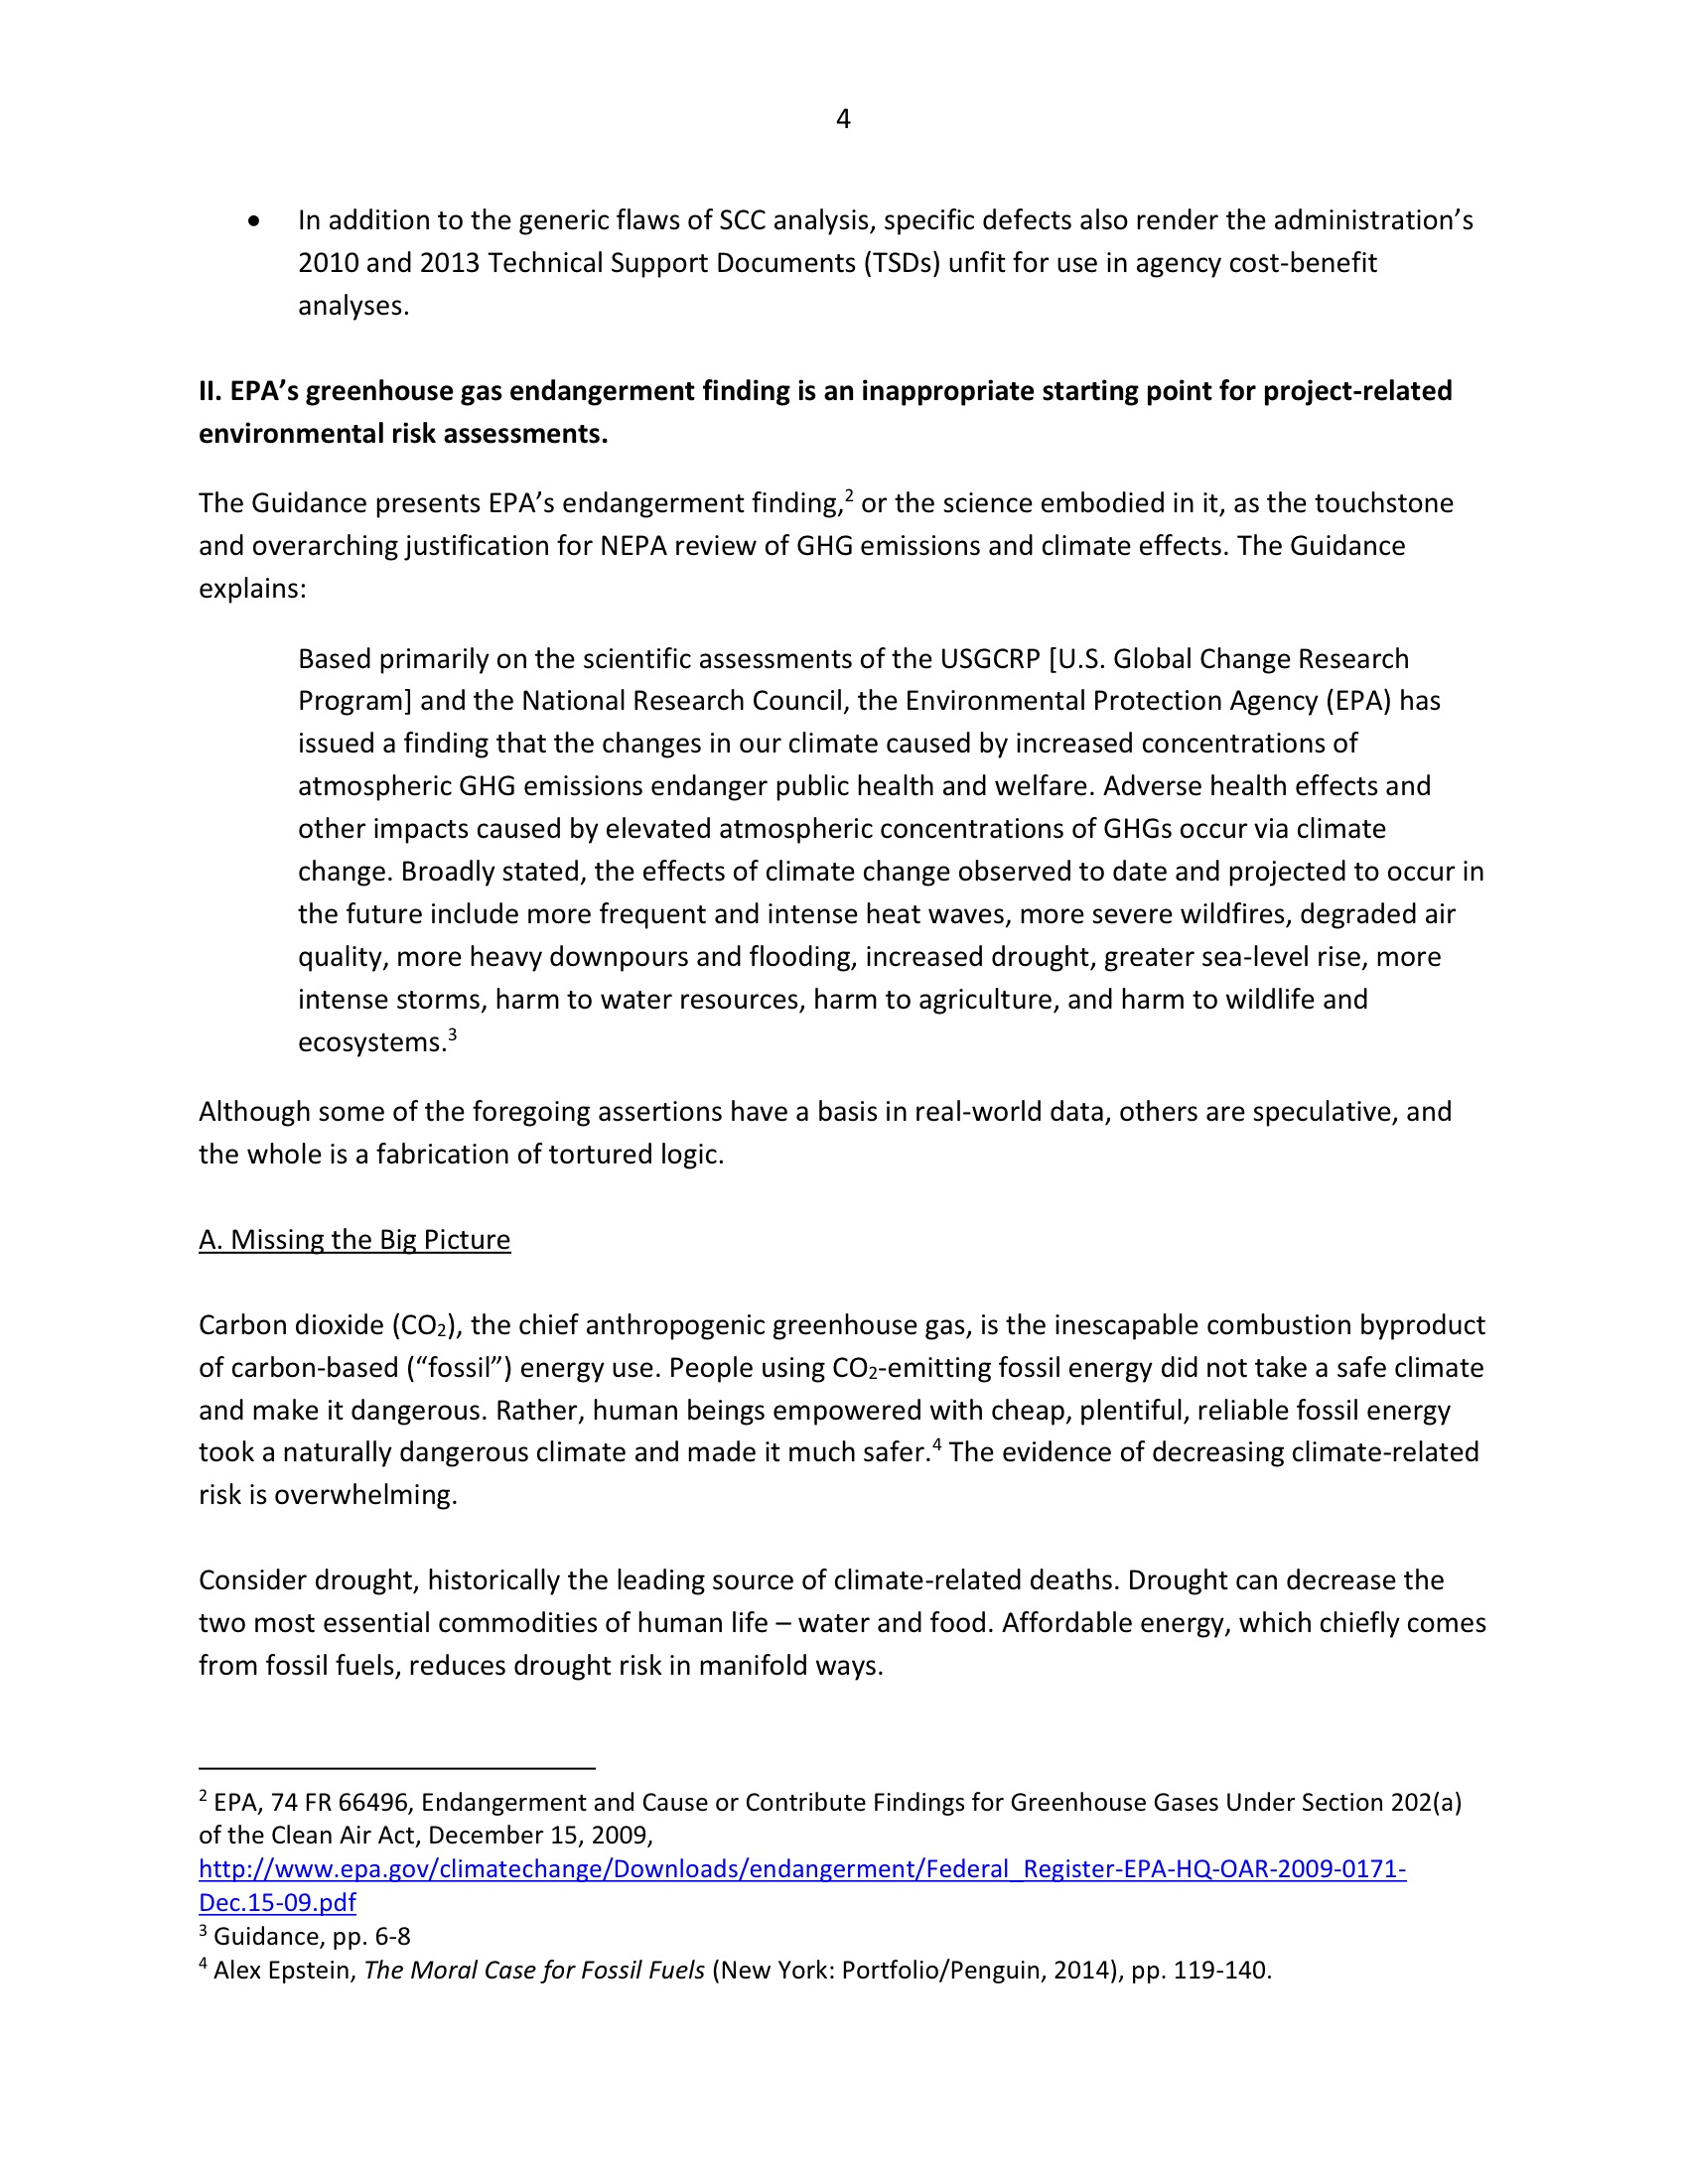 Marlo Lewis Competitive Enterprise Institute and Free Market Allies Comment Letter on NEPA GHG Guidance Document 76-4